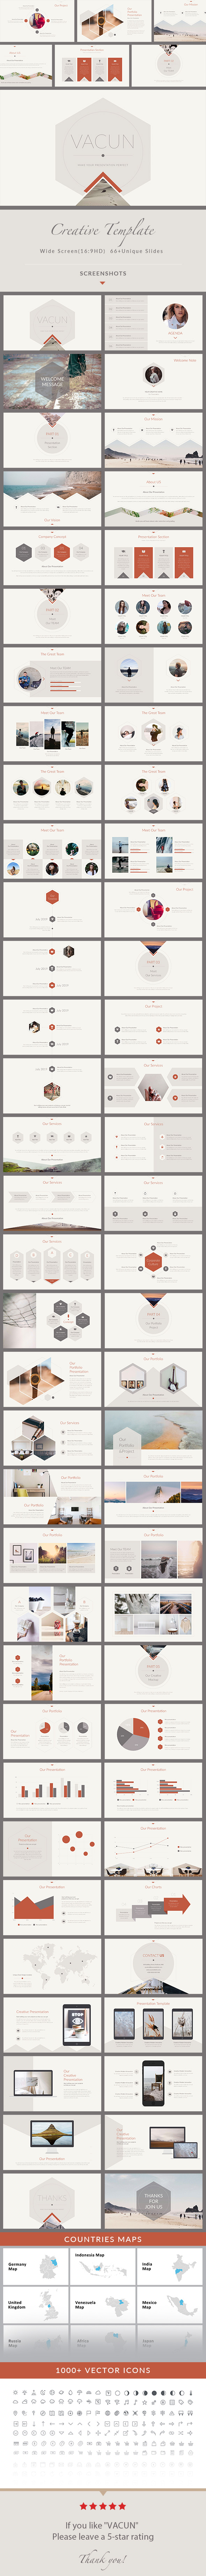 VACUN - Creative Keynote Presentation Template - Creative Keynote Templates